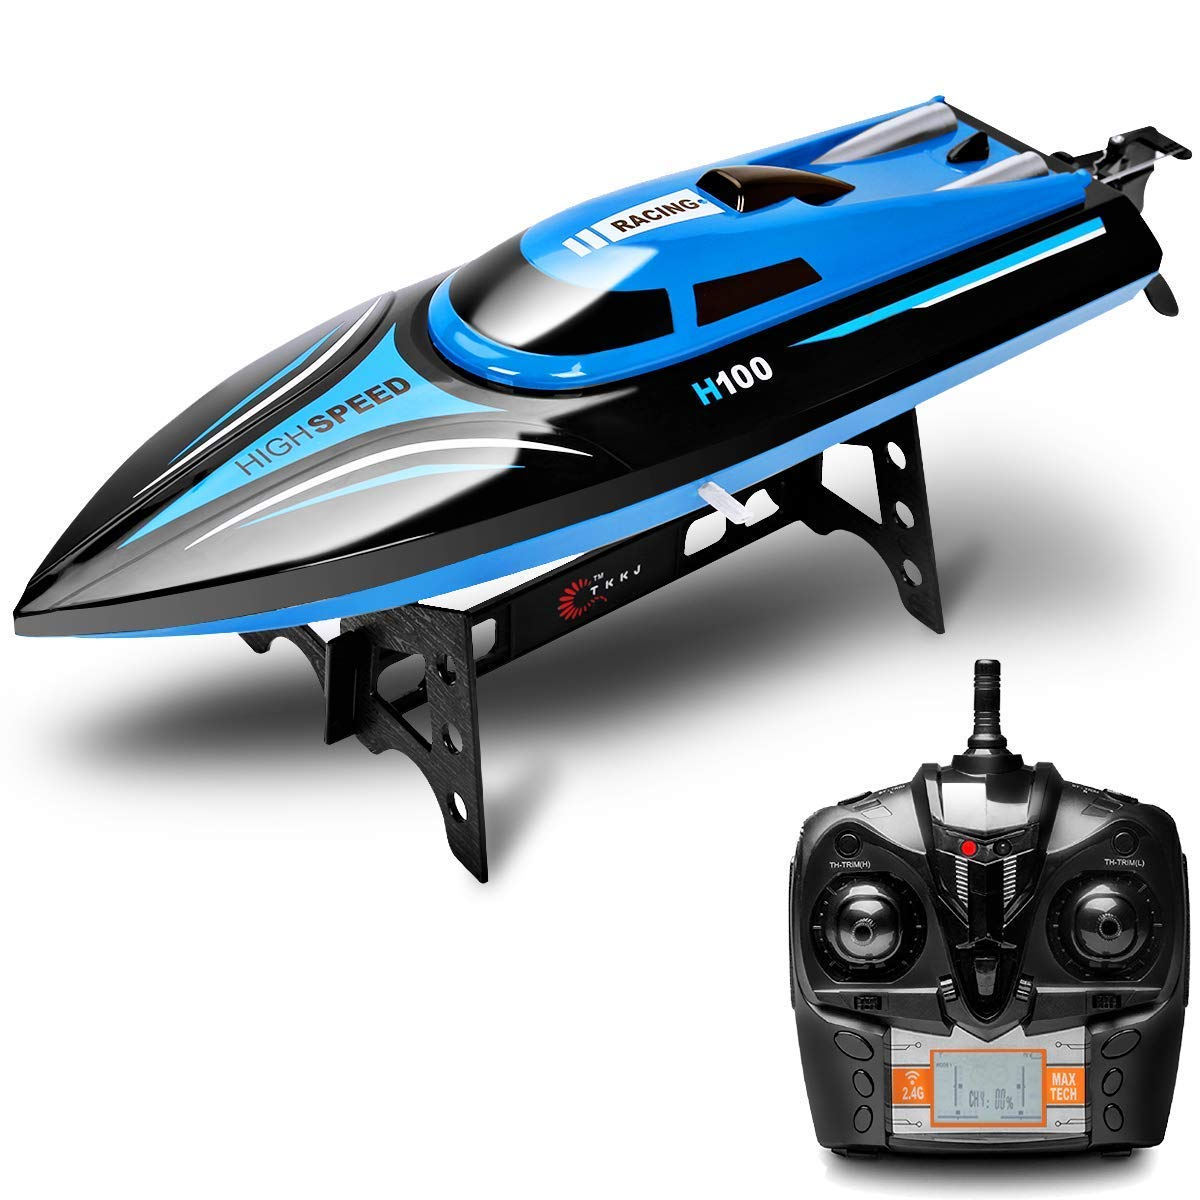 DeXop Remote Control Boat Rc Boat H100 2.4Ghz 4CH Remote Control Electric Racing Boat High Speed Boats with LCD Screen for Adults & Kids (Only Works in Water) (H100)